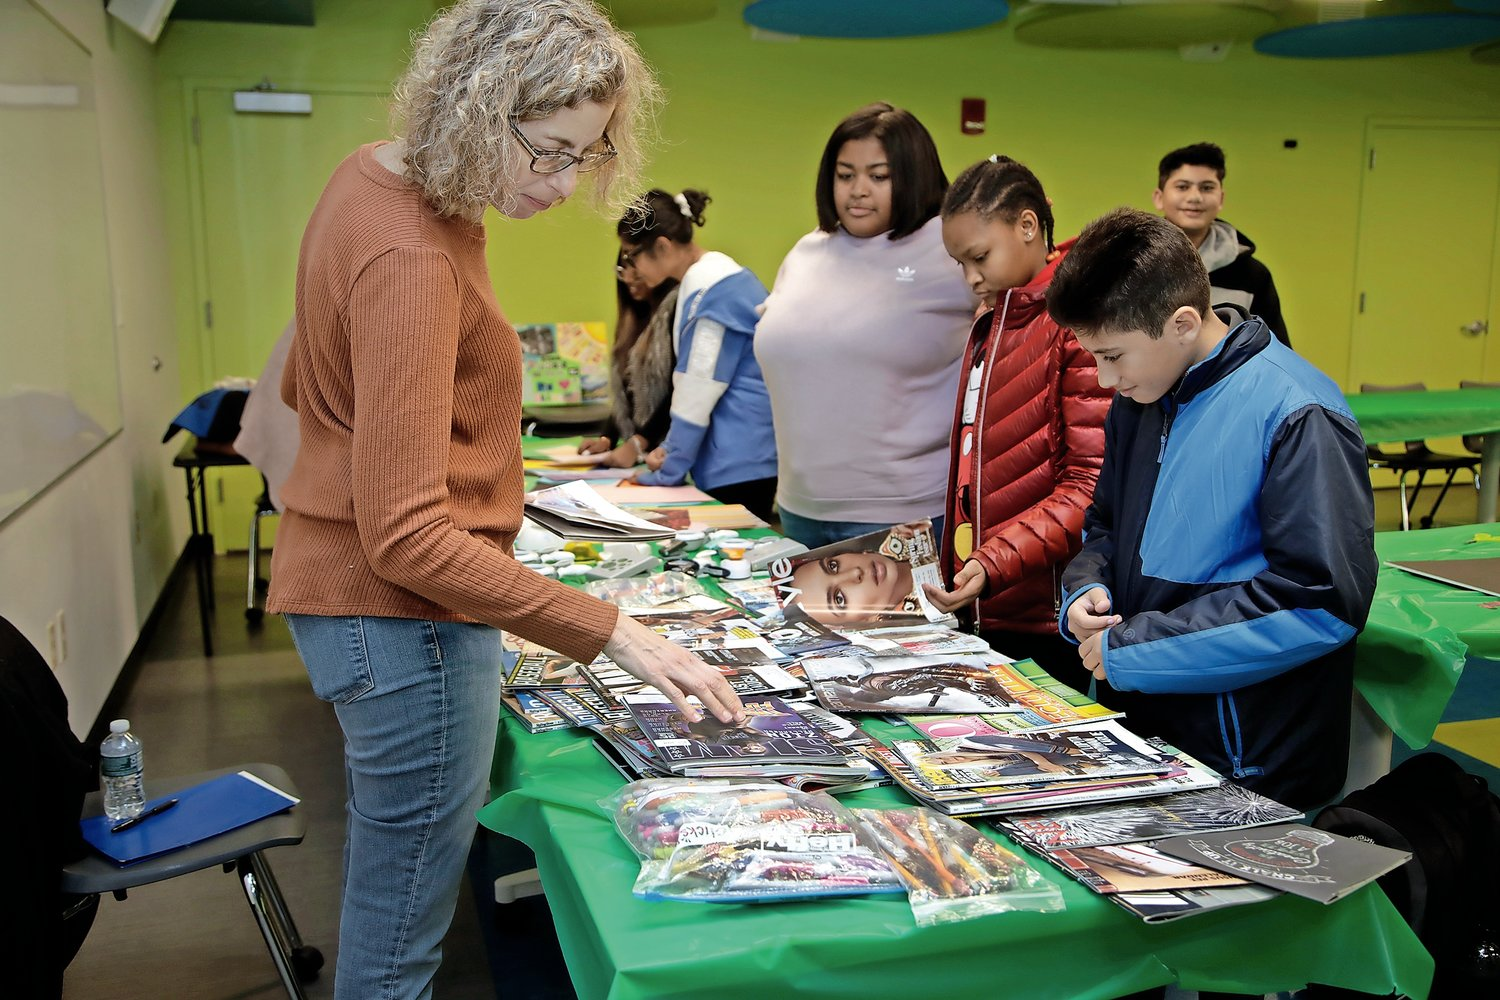 Leslie Sattler, of Green Earth Craft, browsed through magazines for Joe Davis, Erin Simon and Ismael Sohail at the Elmont Memorial Library on Jan. 7.